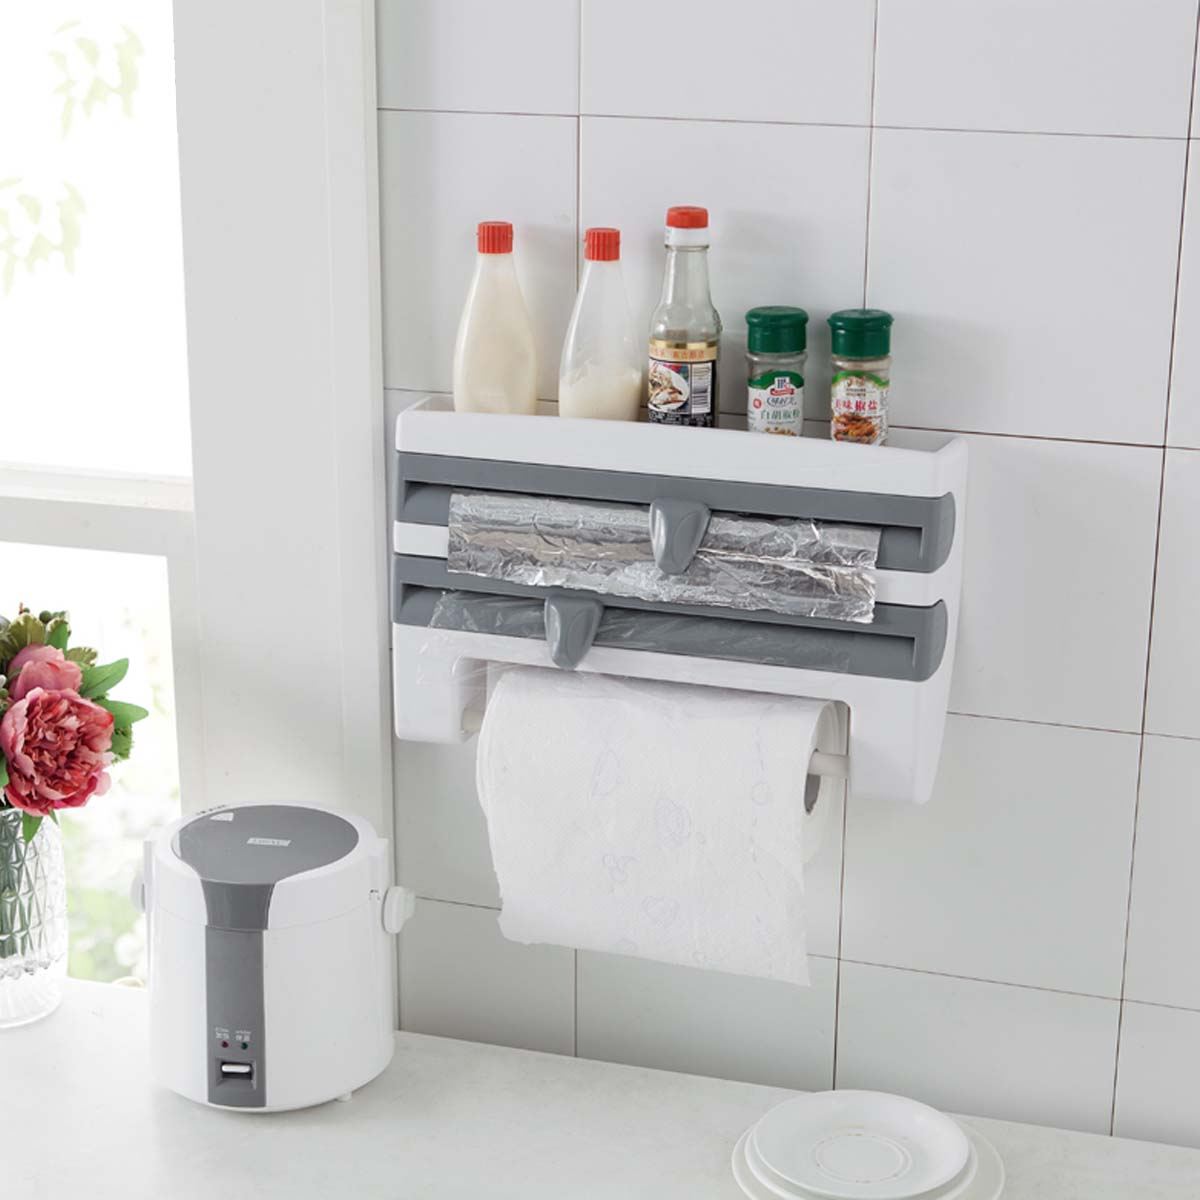 Refrigerator Cling Film Shelf With Cutting Device Storage Paper Towel Holder